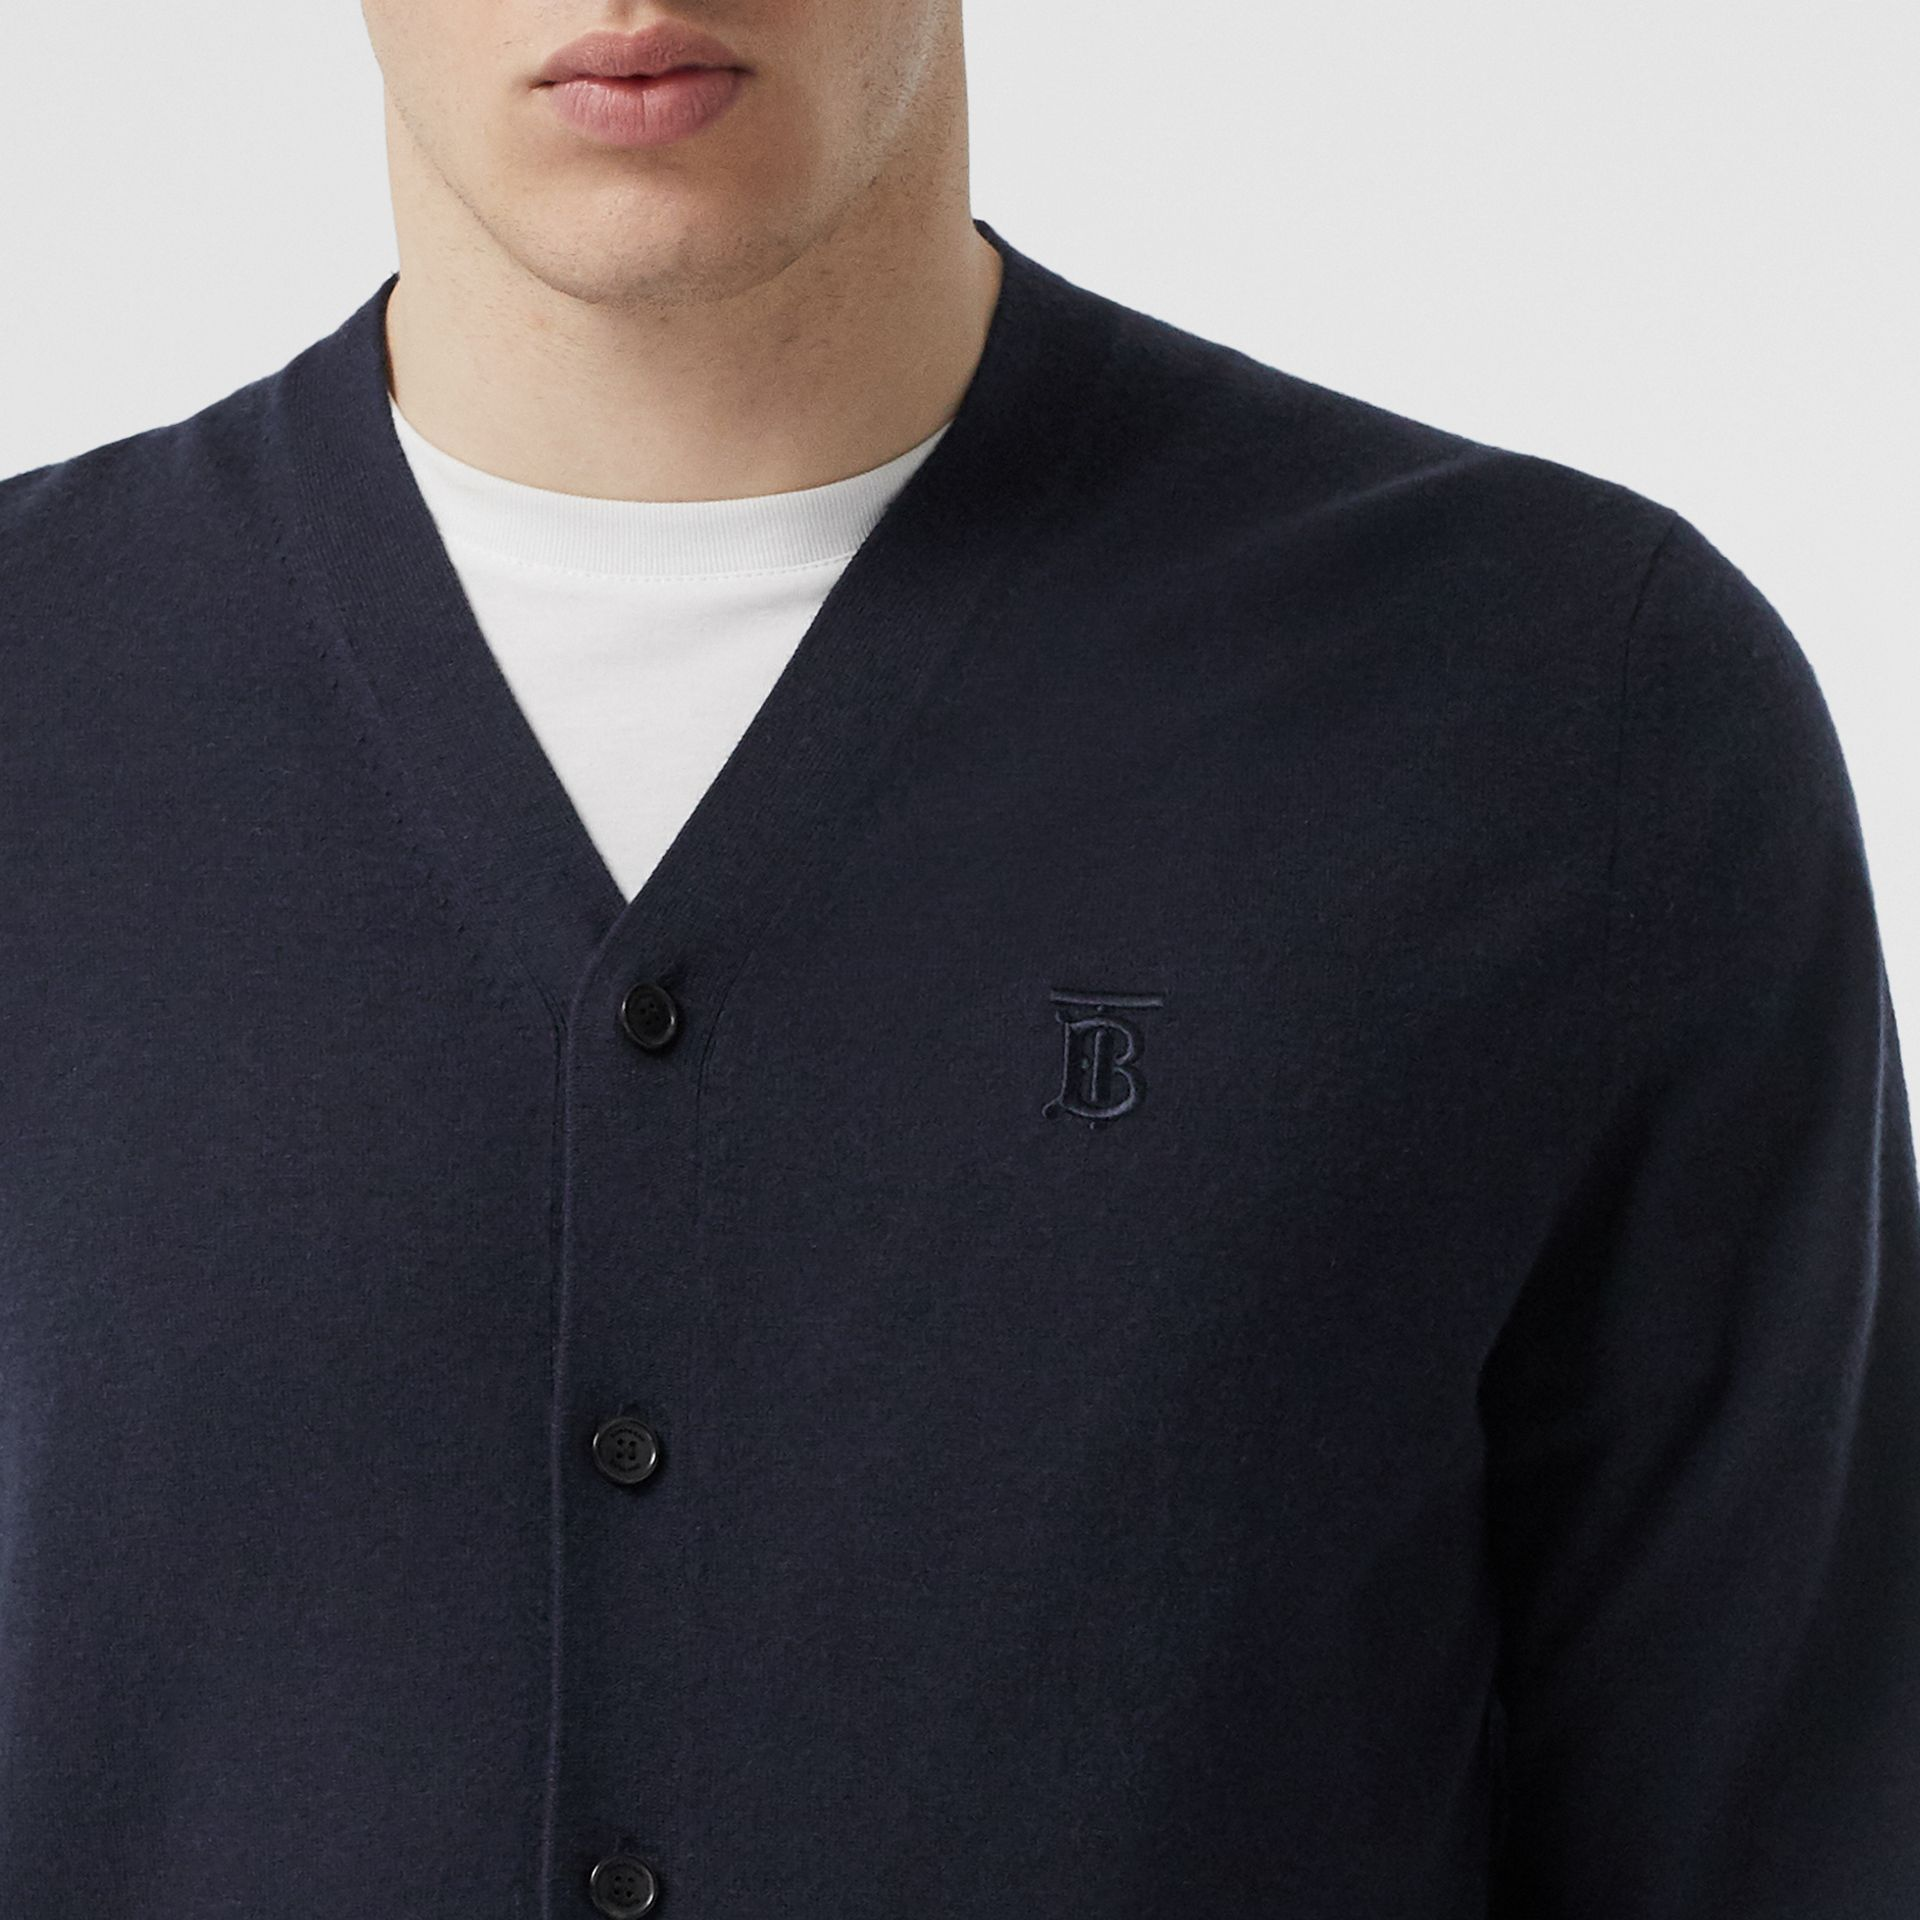 Monogram Motif Cashmere Cardigan in Navy - Men | Burberry Hong Kong S.A.R - gallery image 1